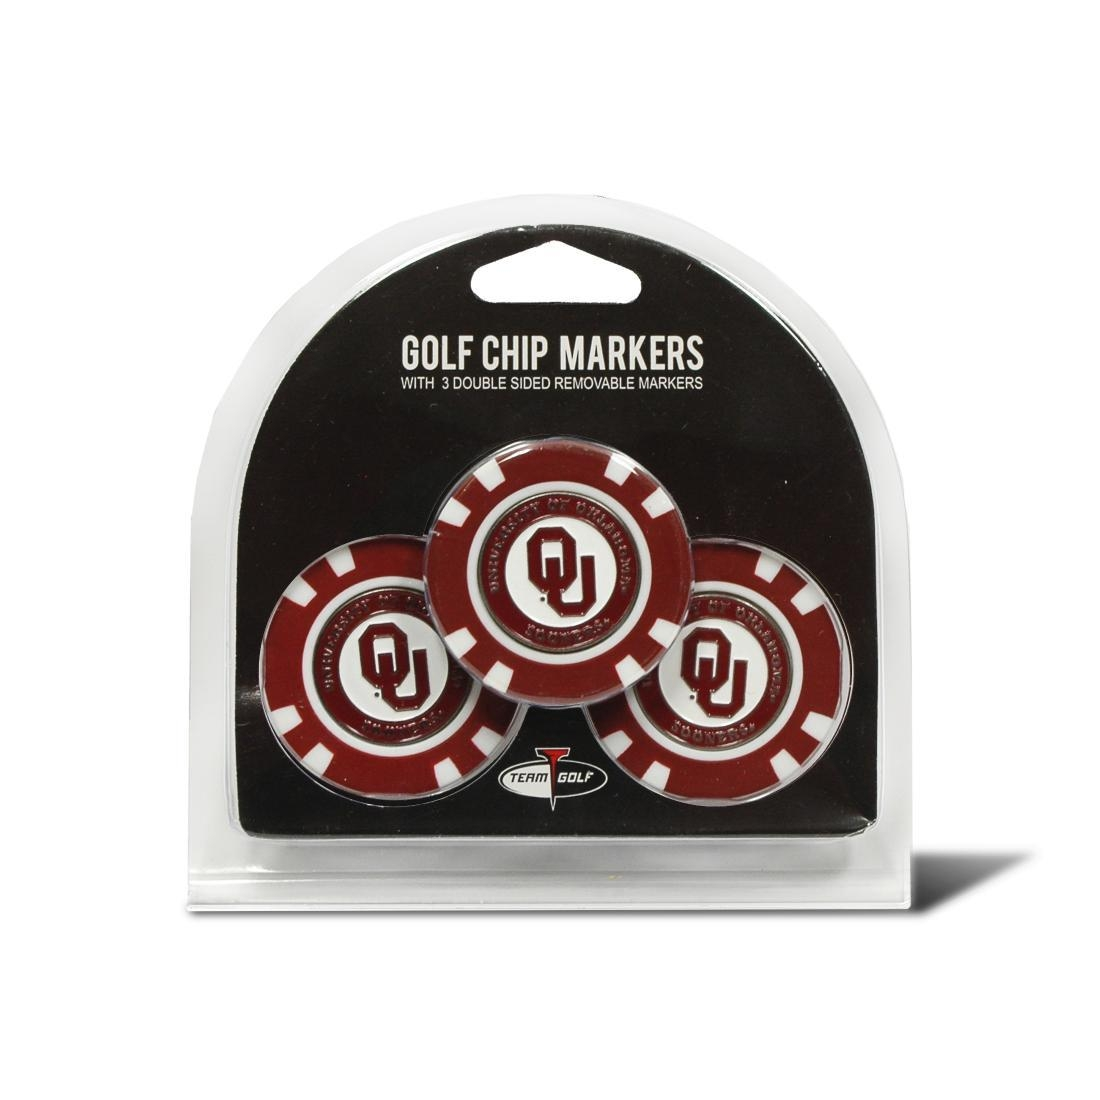 Oklahoma 3 Pack Golf Chip Ball Markers - 24488 - Golf Golf Headcovers Apparel Golf Bags: Golf Ame & Lulu Collection 24488